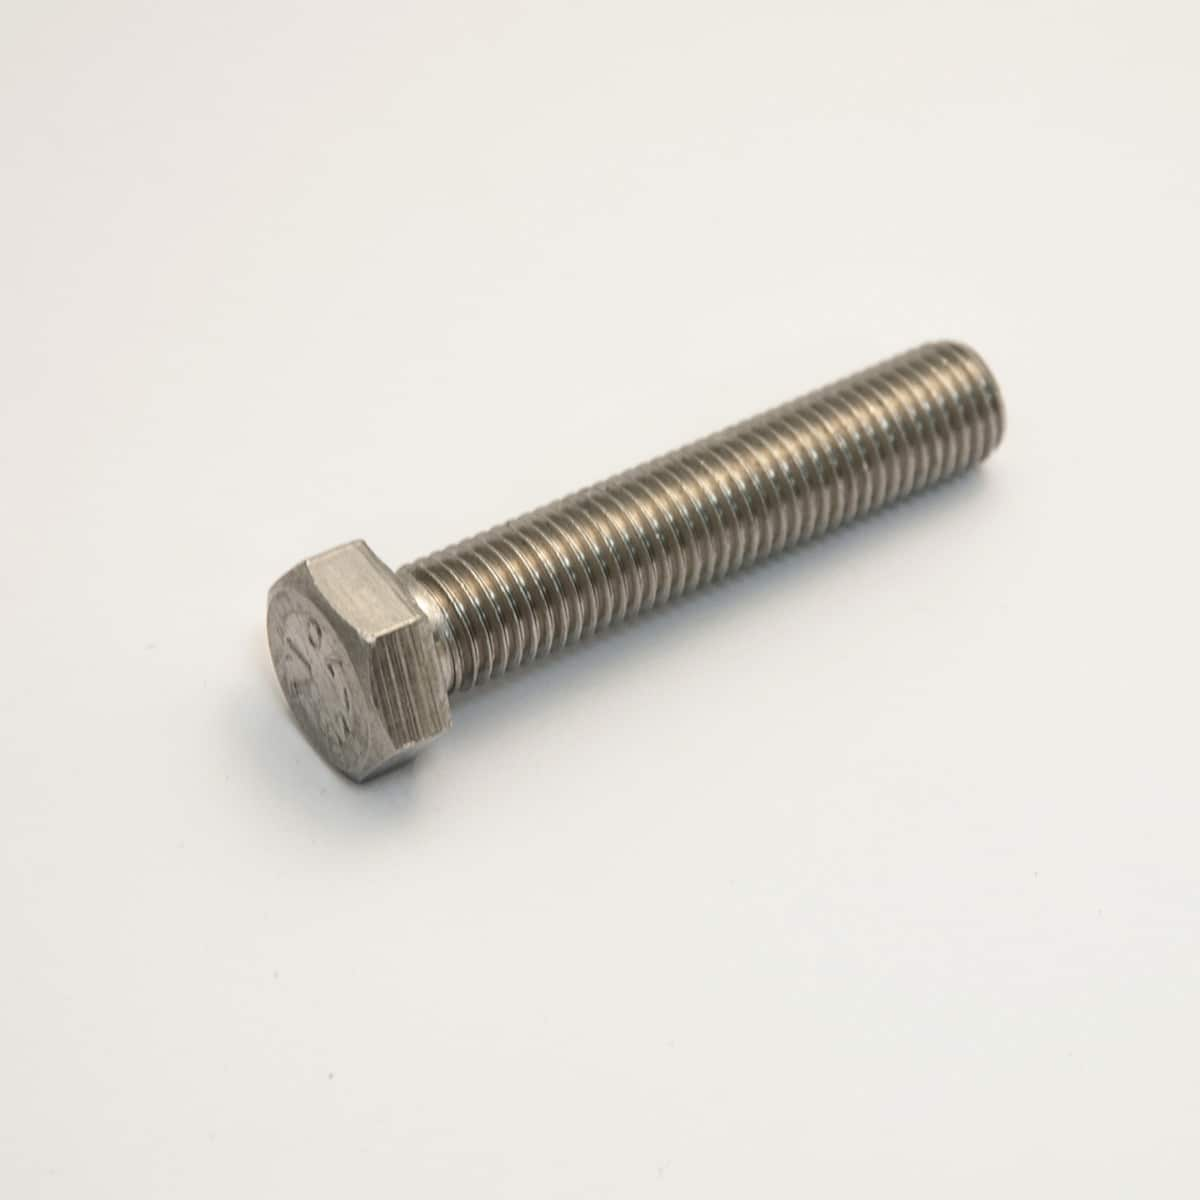 Hexagonal head full threading screws